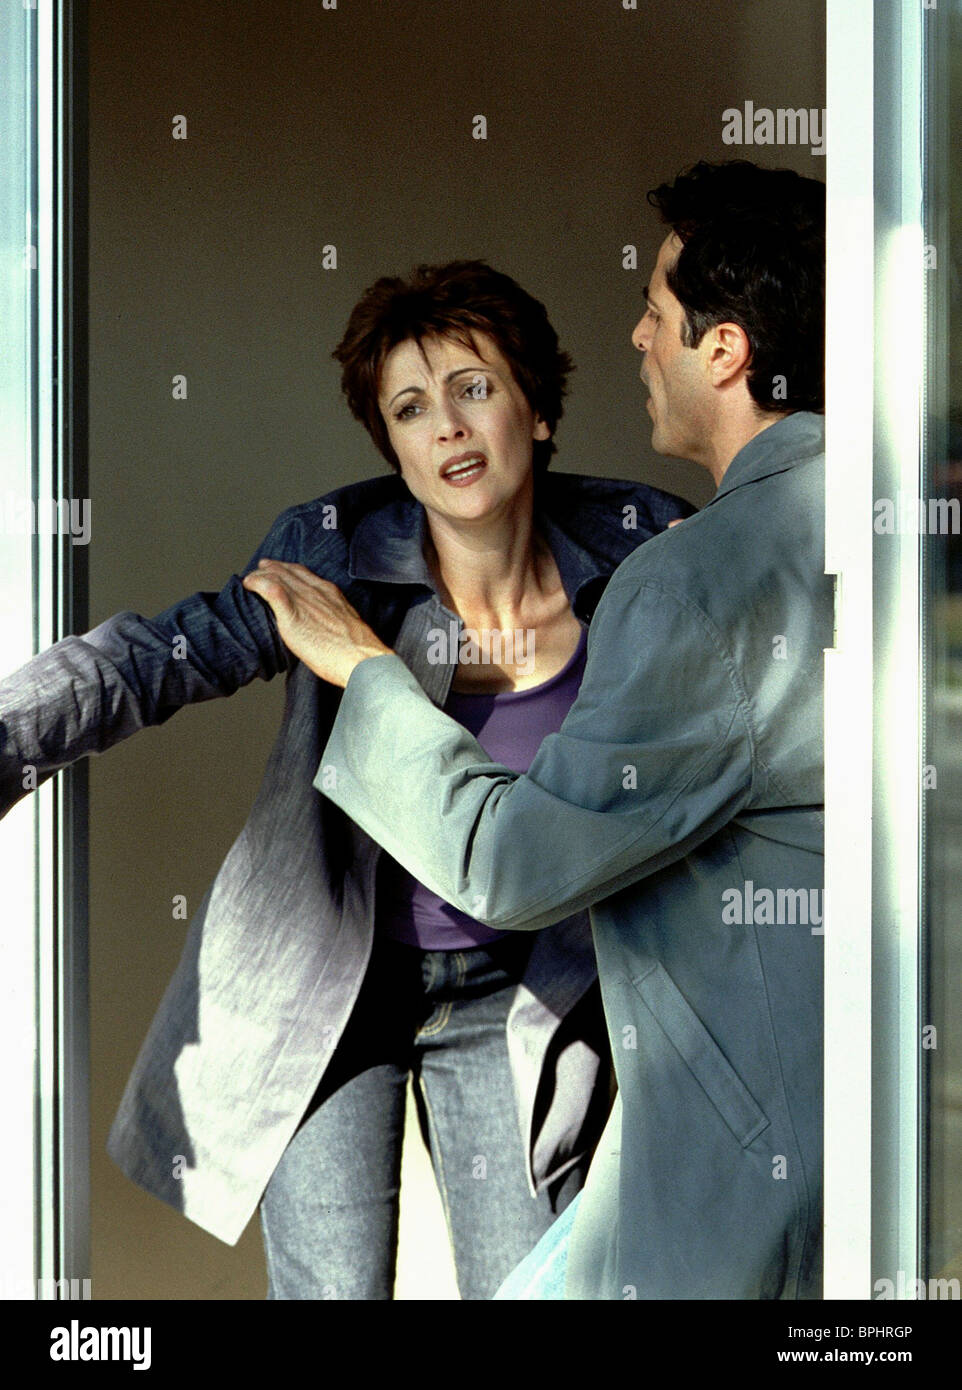 EMMA SAMMS PRETEND YOU DON'T SEE HER (2002) - Stock Image